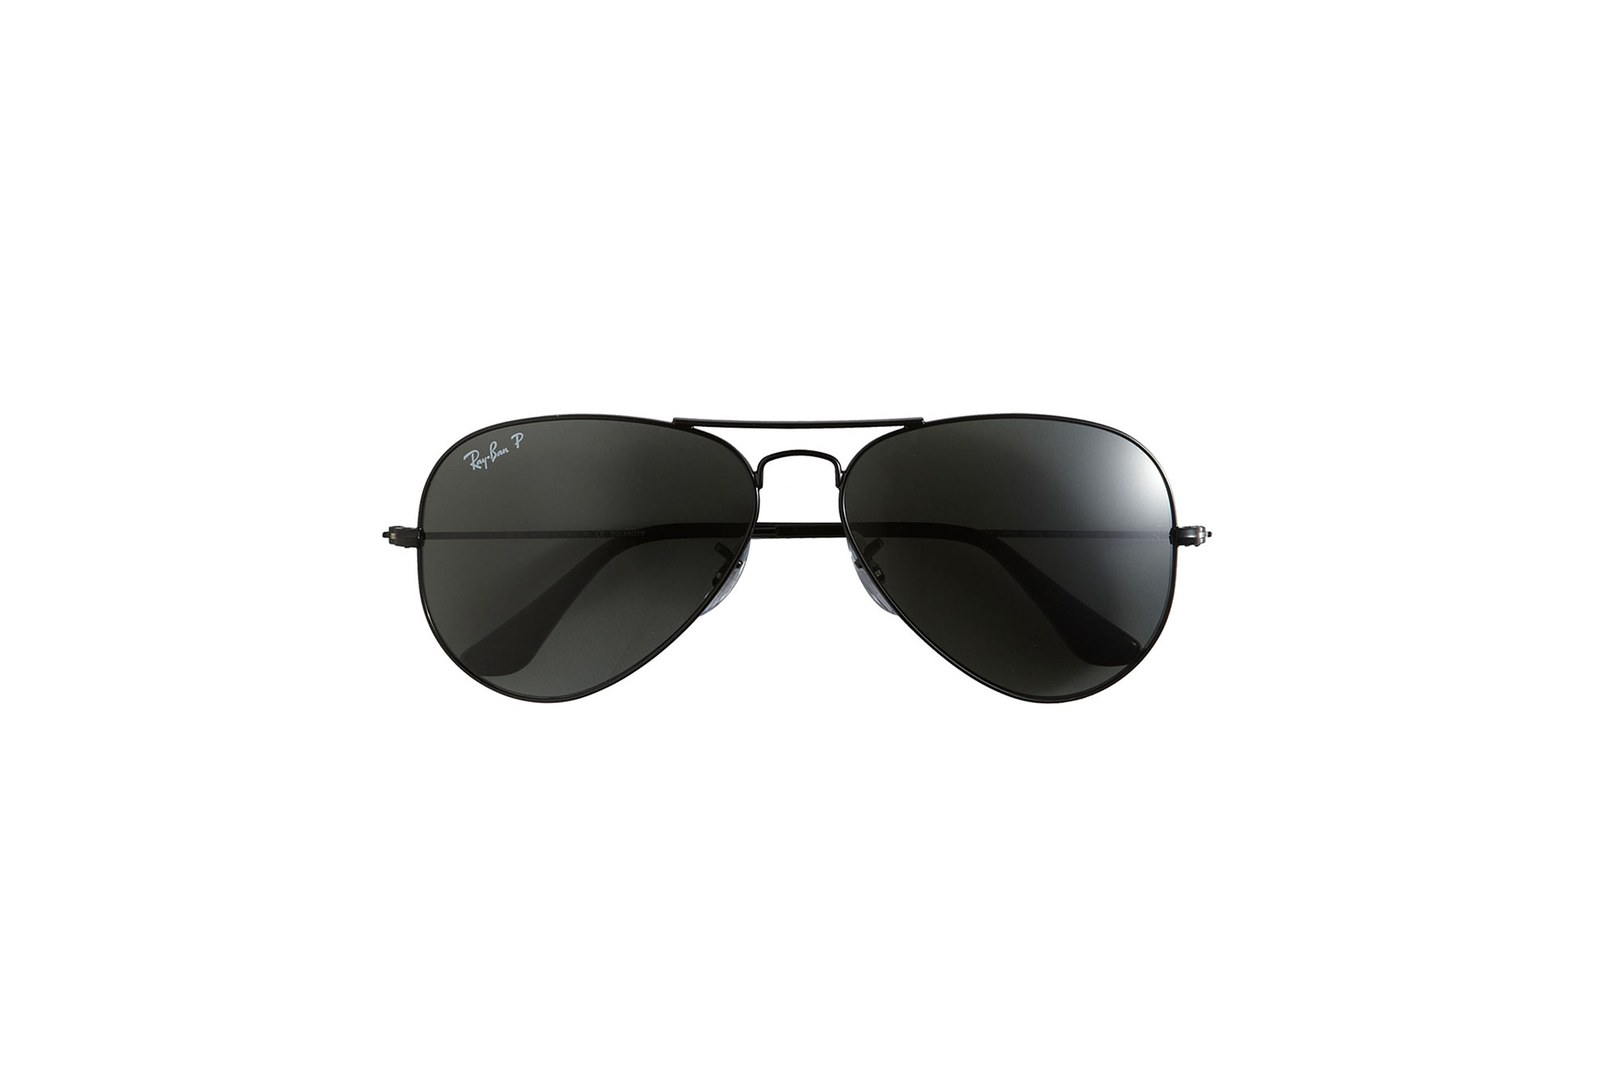 Kính Ray-Ban polarized original aviators